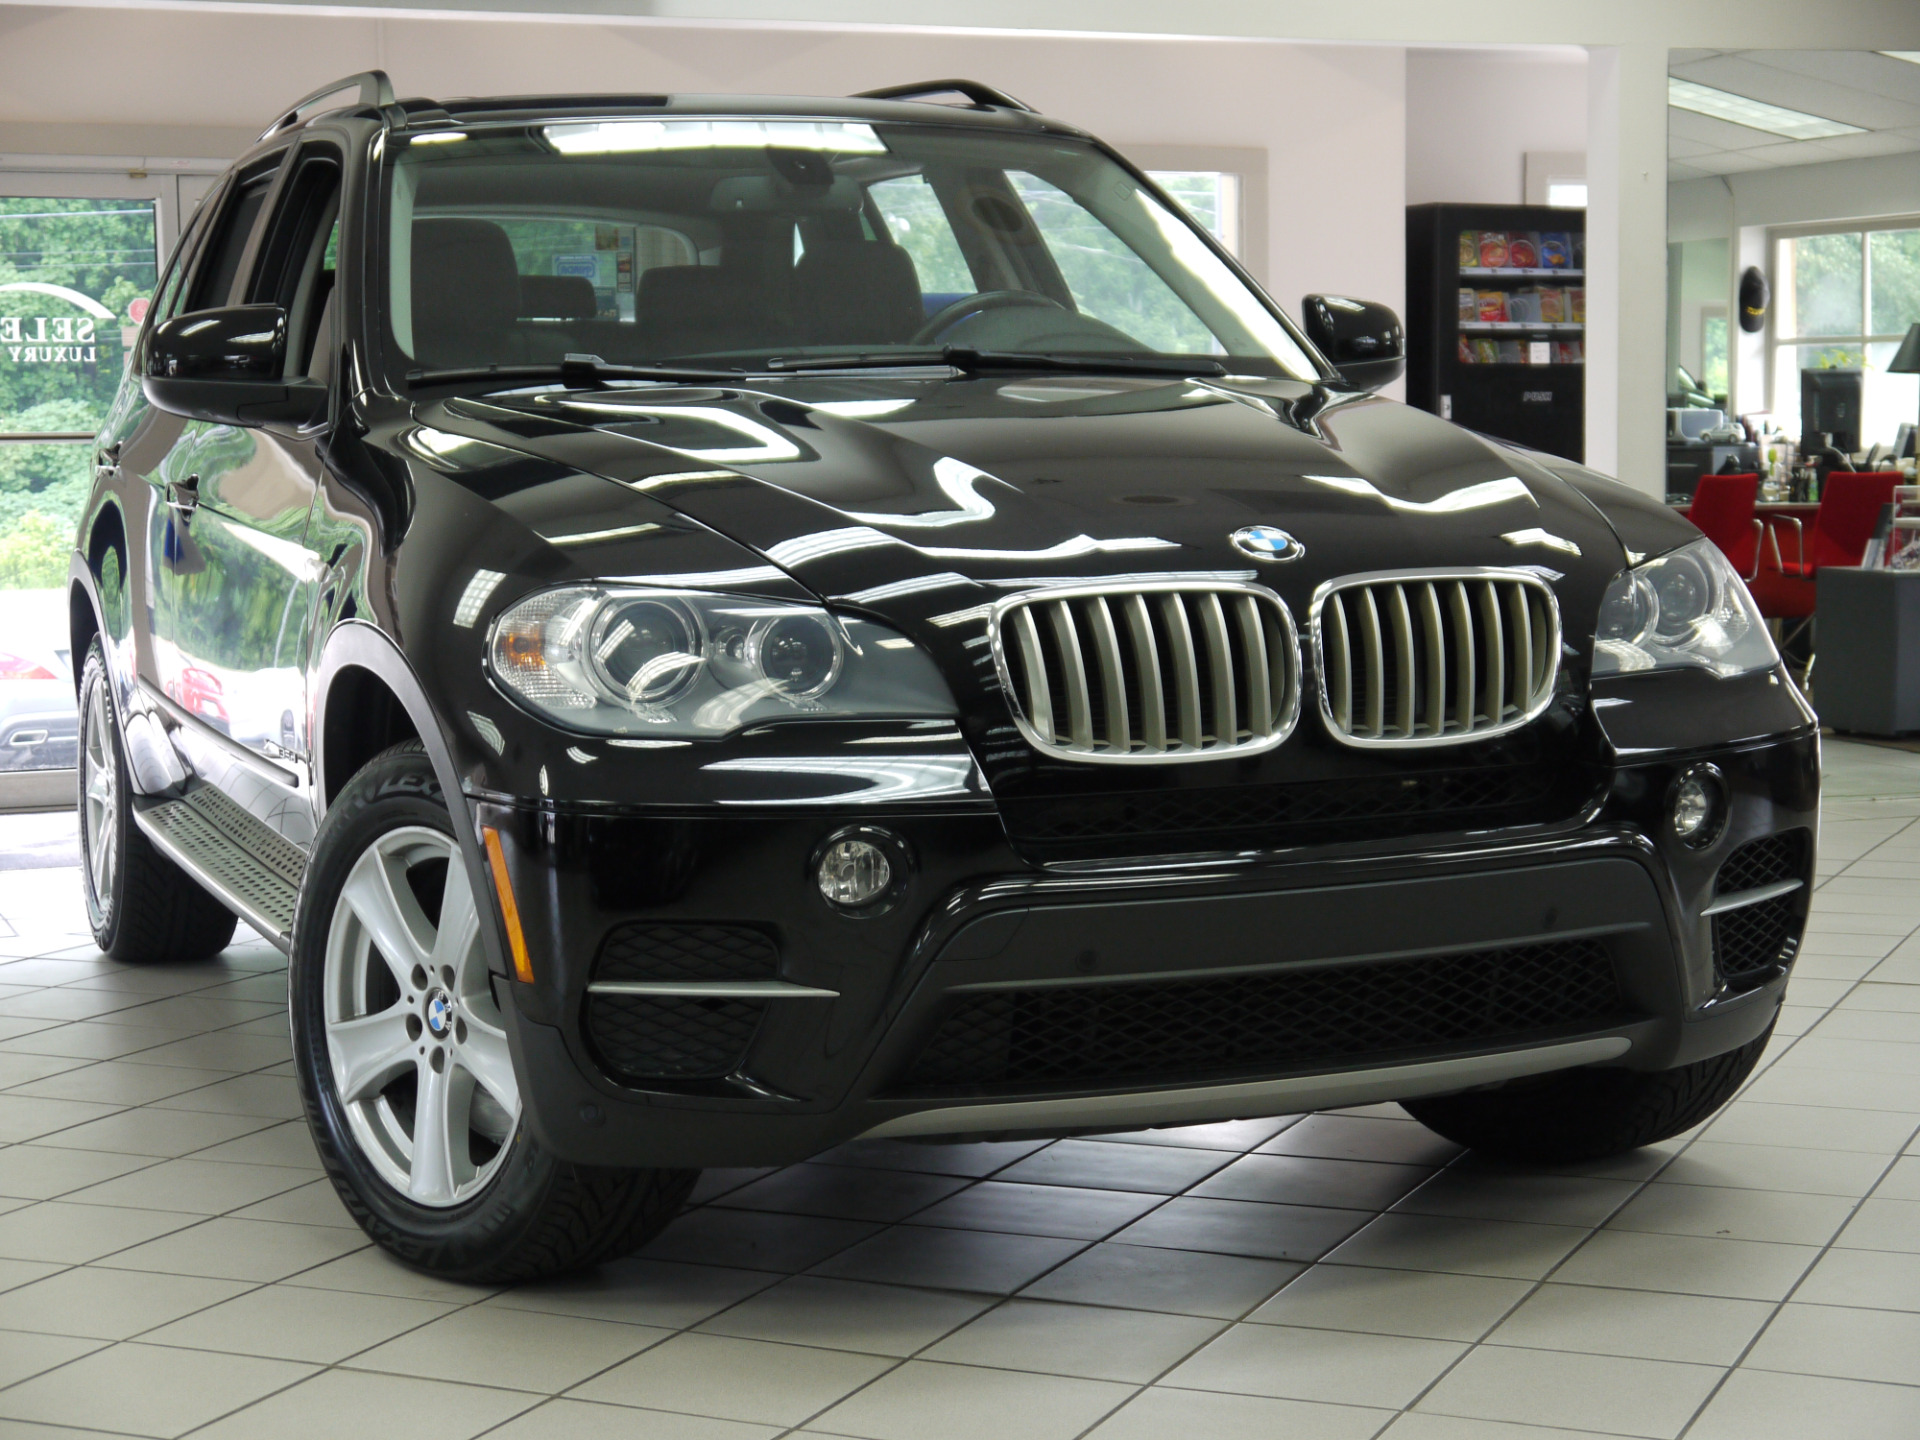 used 2012 bmw x5 xdrive35d marietta ga. Black Bedroom Furniture Sets. Home Design Ideas